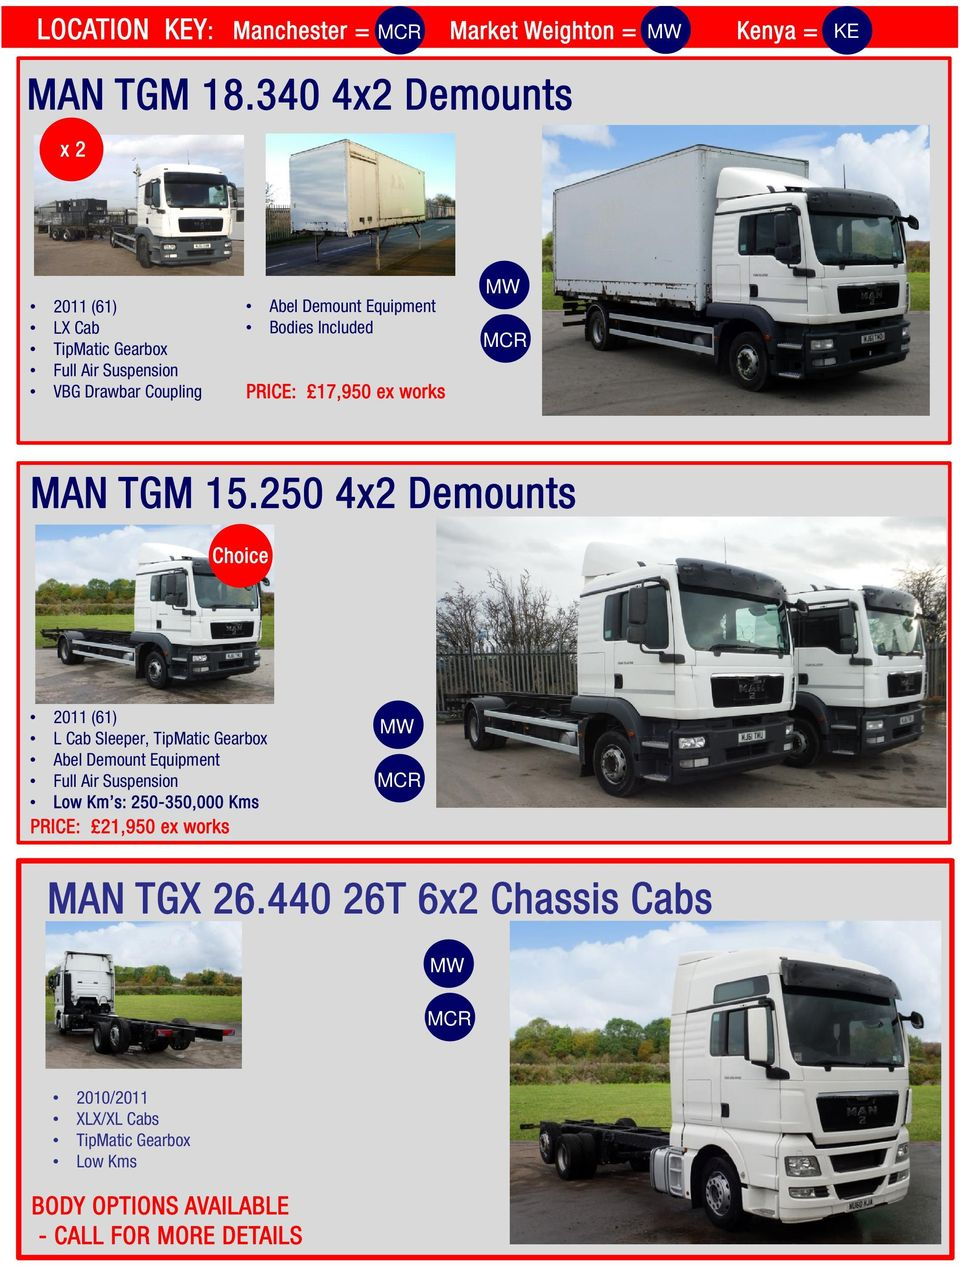 PRICE: 17,950 ex works MAN TGM 15.250 4x2 Demounts MAN TGM 15.